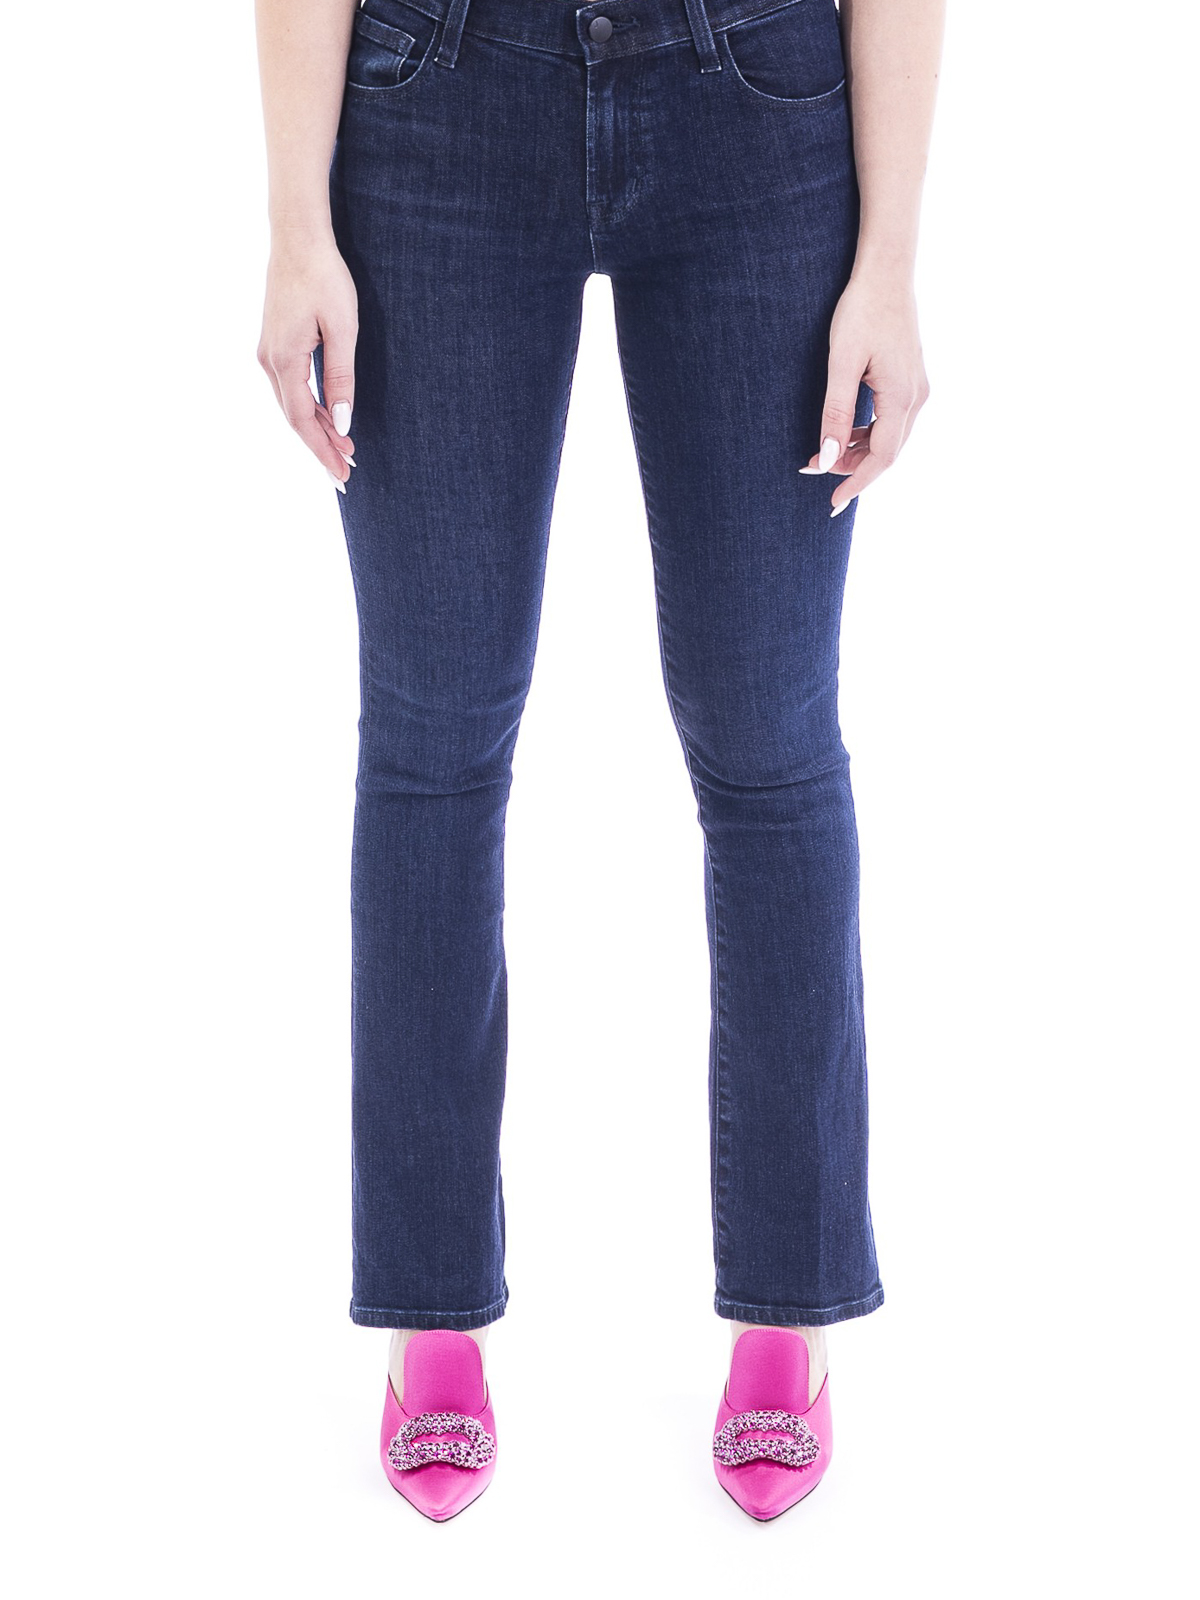 J Brand women's jeans sale | Shop online at iKRIX